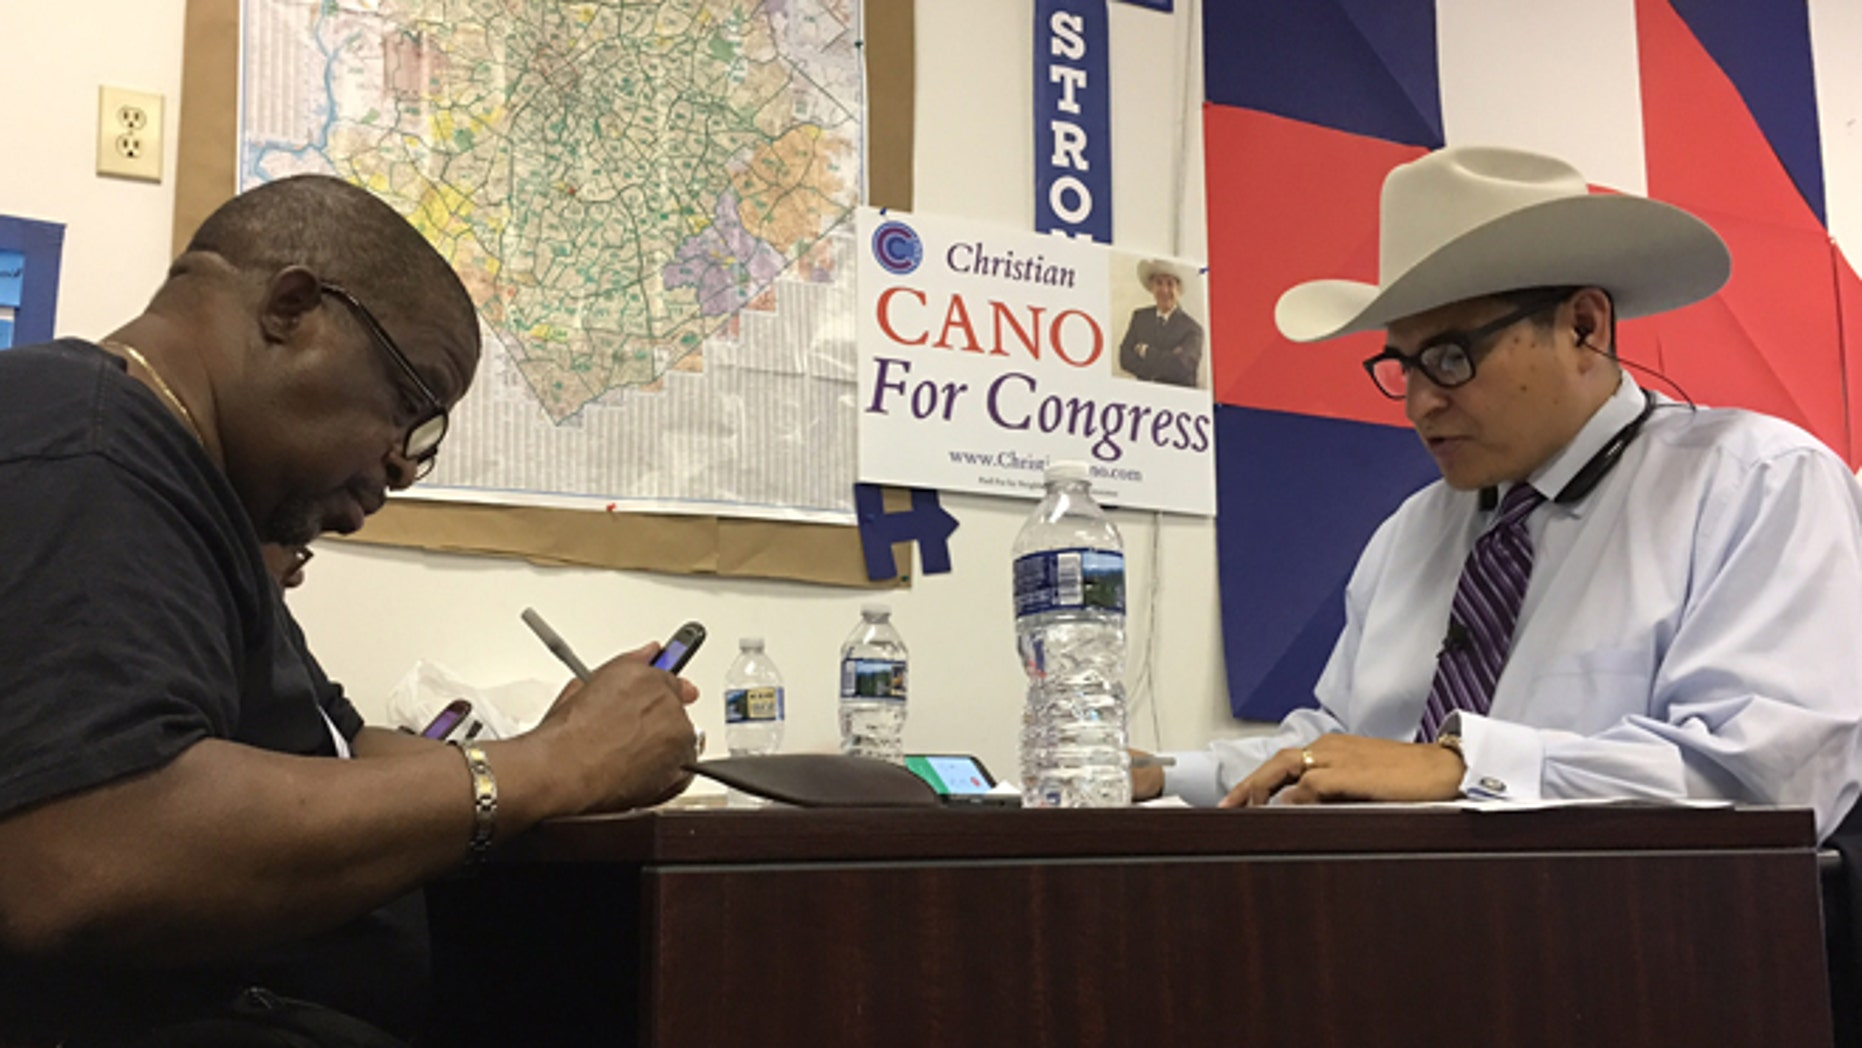 Shown here is North Carolina House candidate Christian Cano, right.